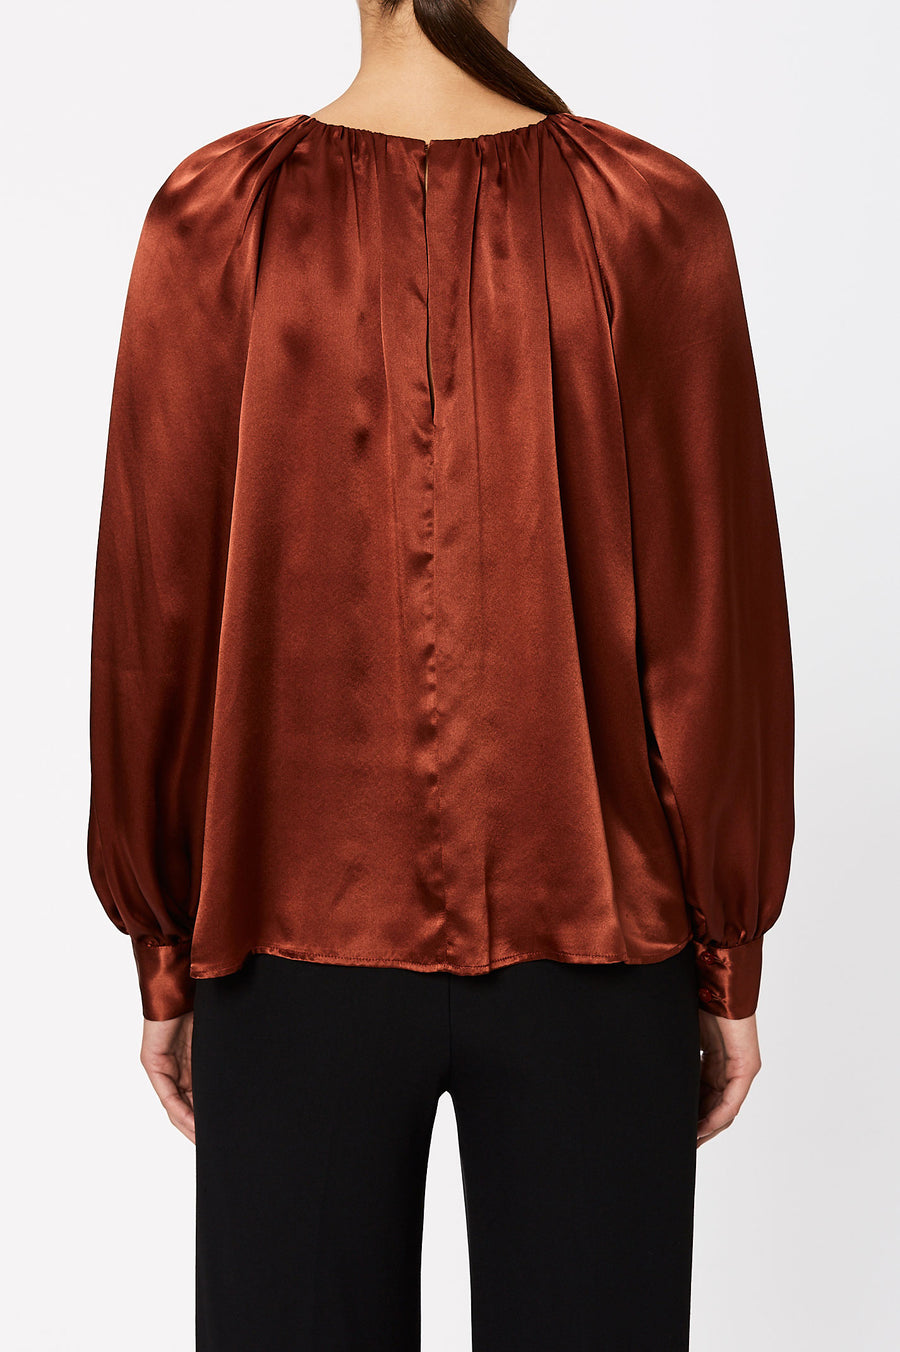 Silk Gather Neck Blouse Cocoa - Scanlan Theodore